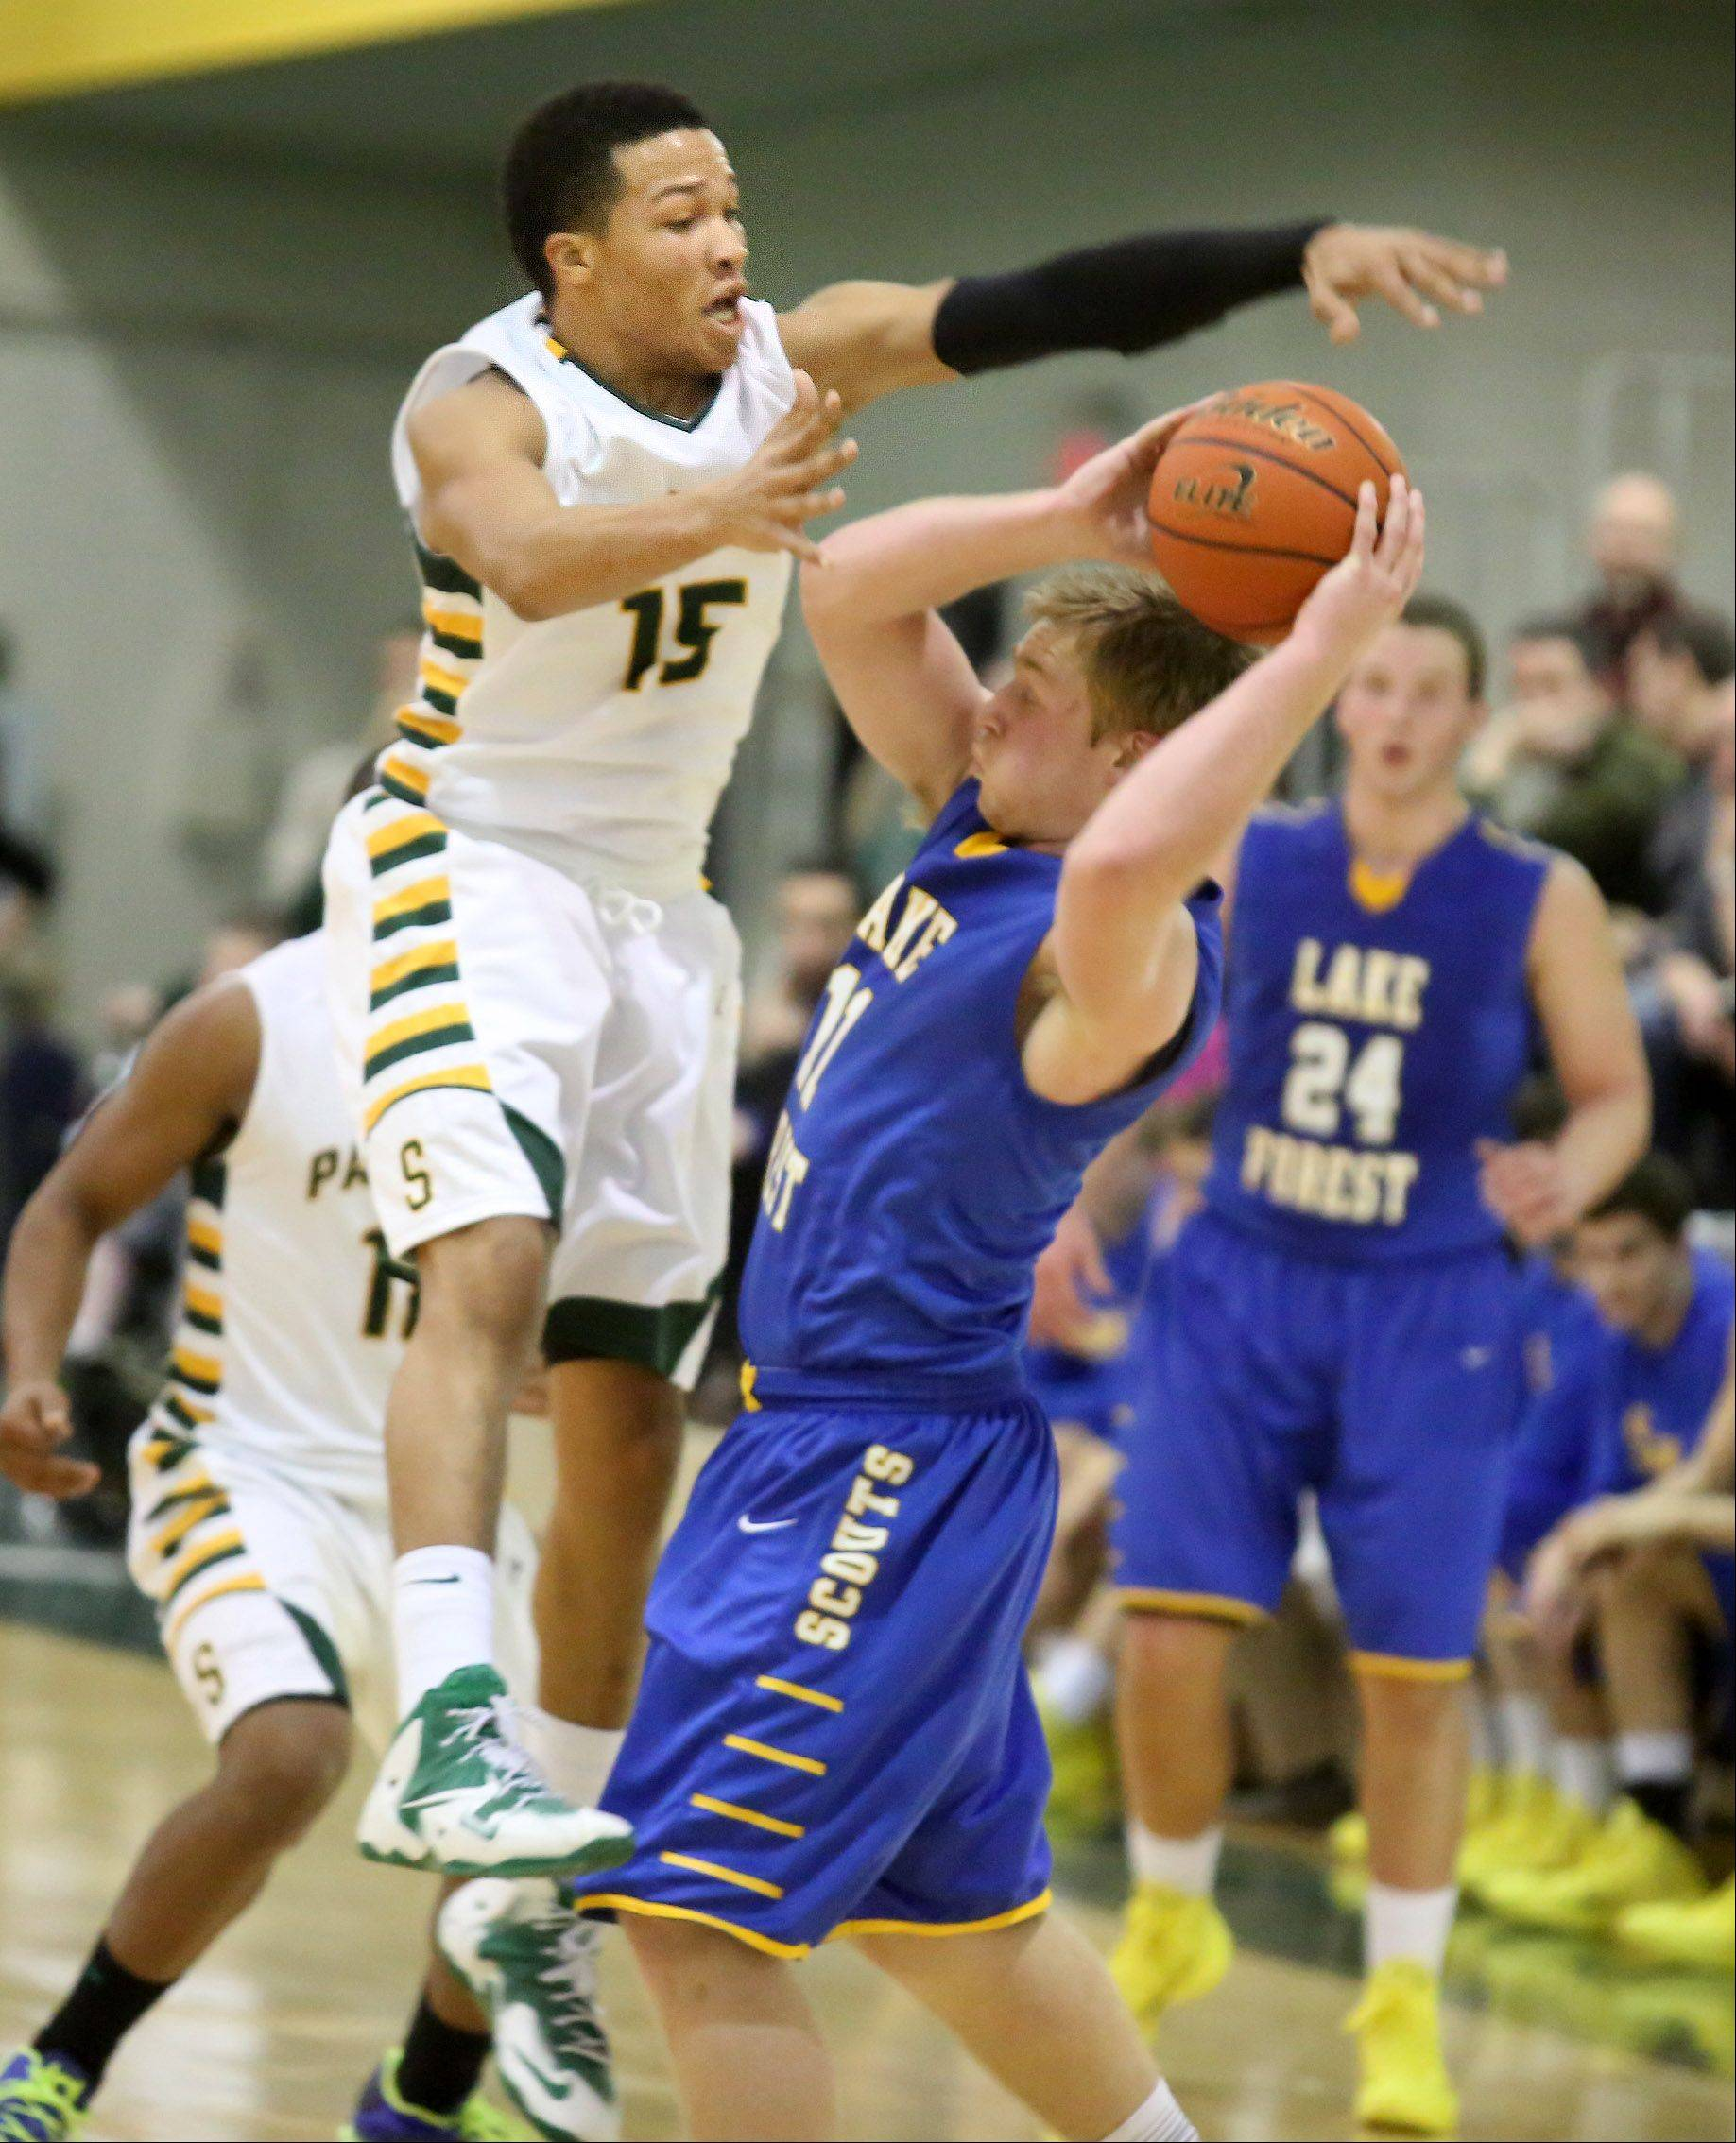 Stevenson guard Jalen Brunson leaps to stop Lake Forest guard Jack Traynor from passing the ball at Stevenson on Friday.